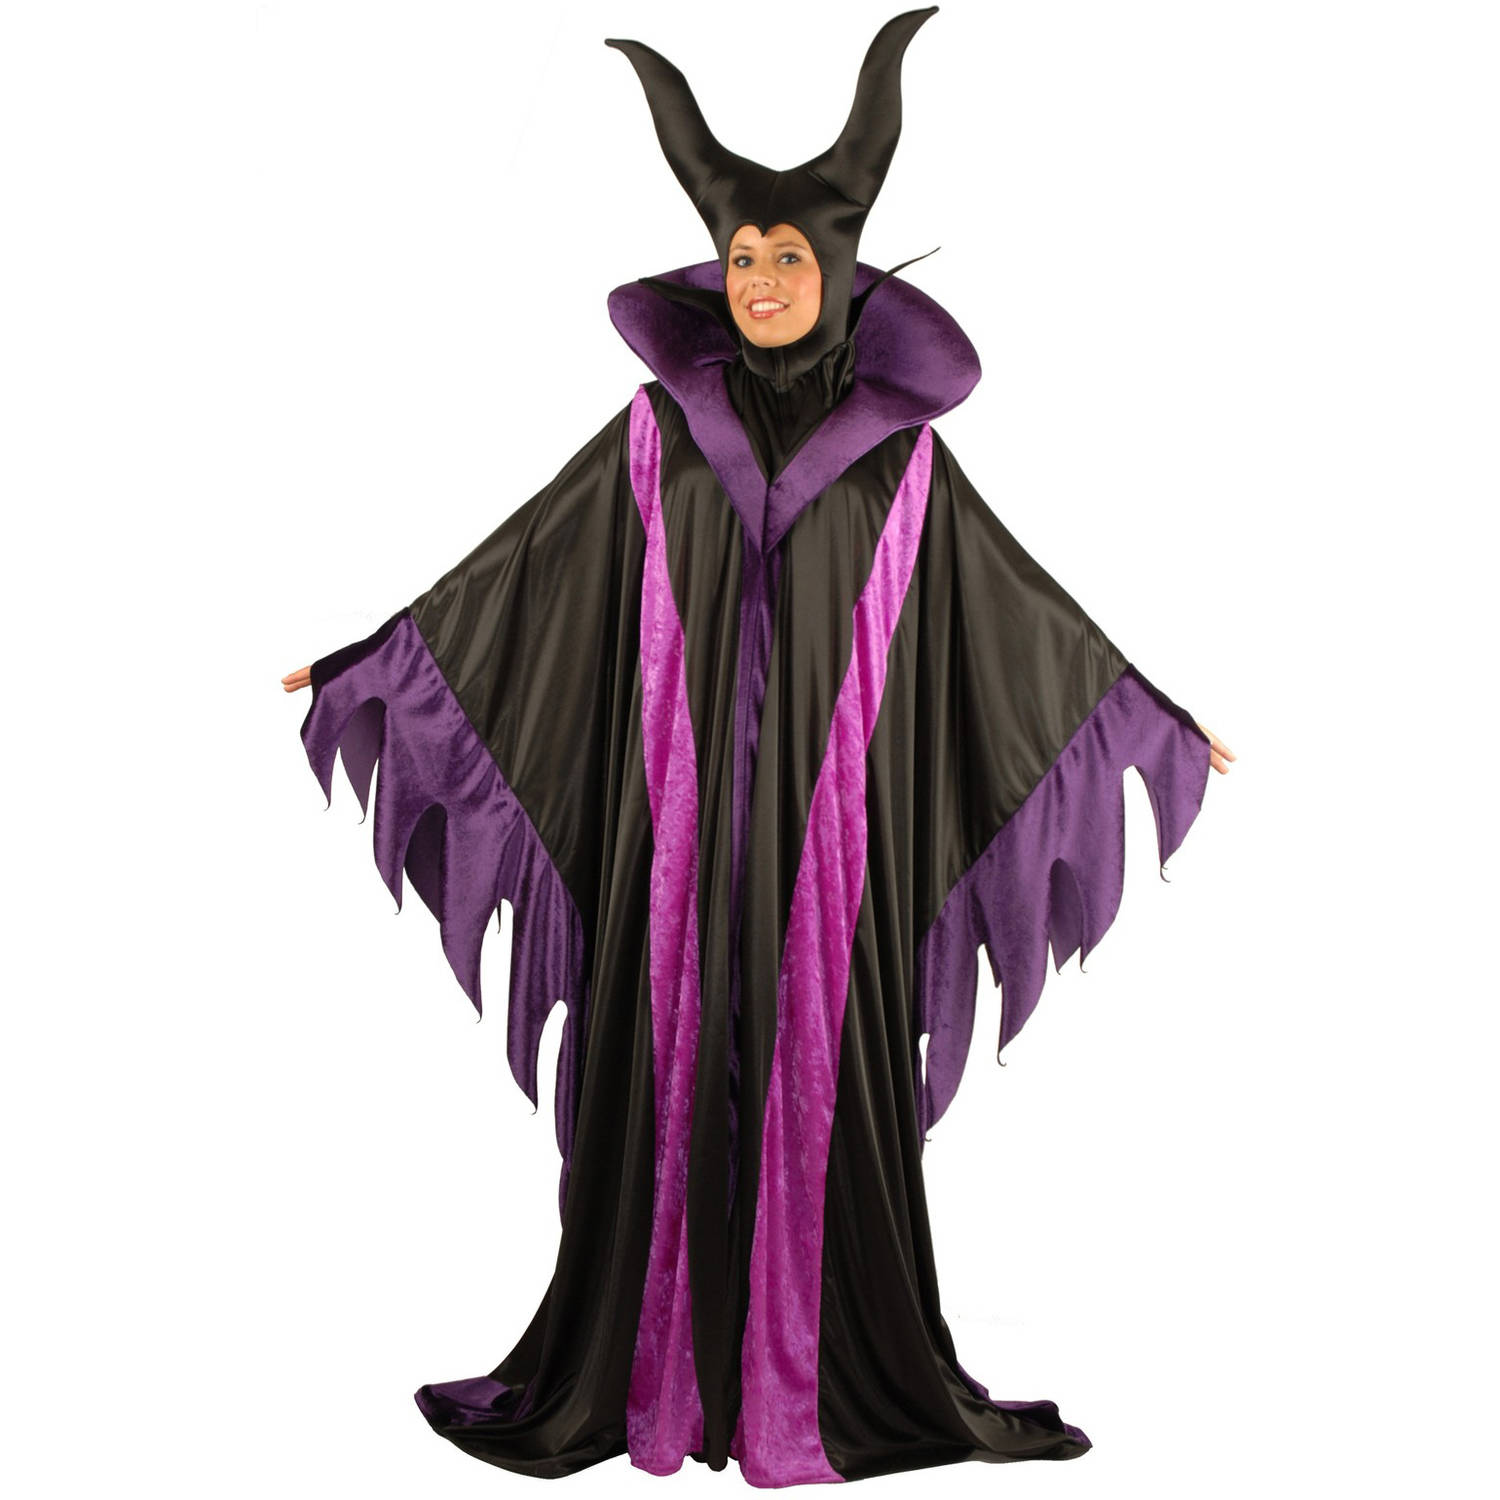 Frozen: Anna Deluxe Traveling Gown Women's Adult Halloween Costume, S